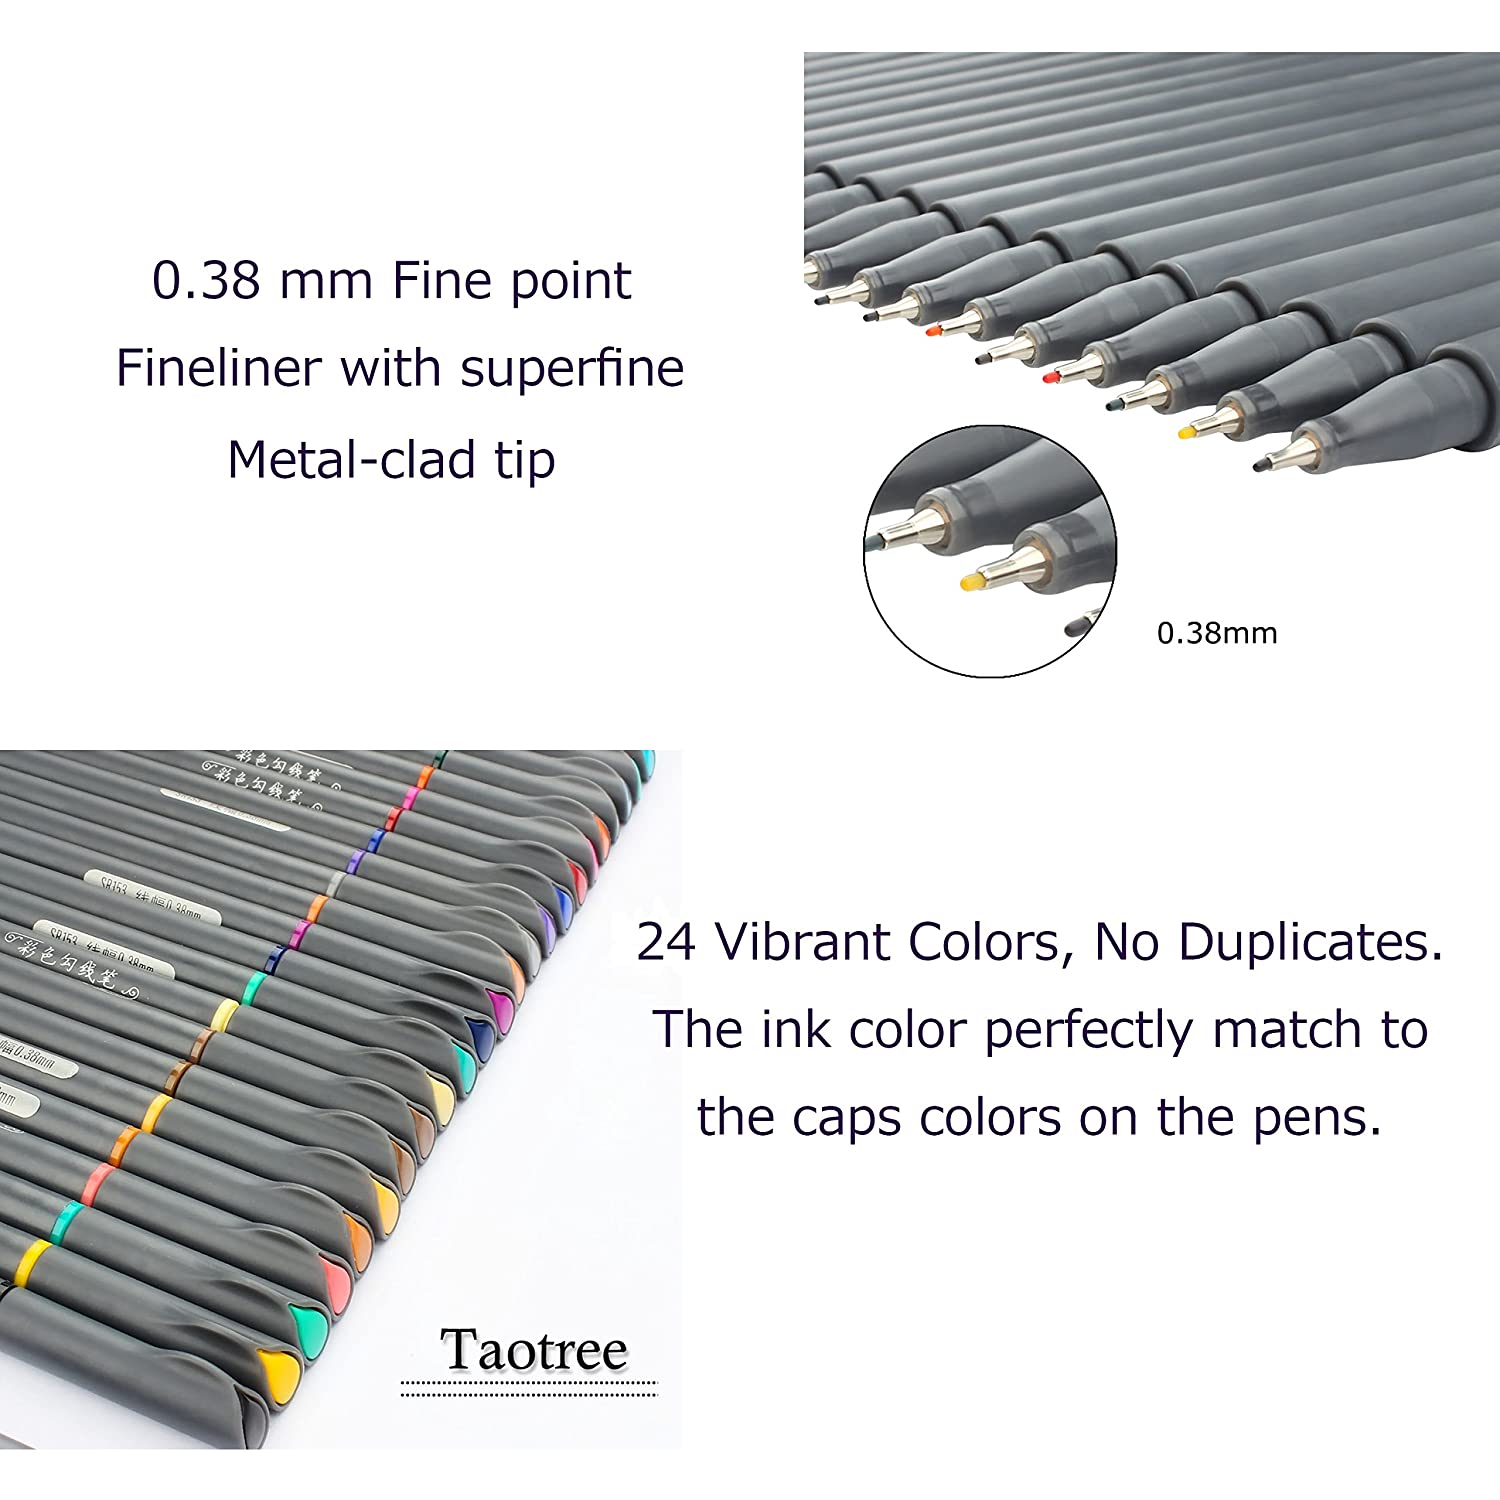 24 Fineliner Color Pens Set, Taotree Fine Line Colored Sketch Writing Drawing Pens for Bullet Journal Planner Note Taking and Coloring Book, Porous Fine Point Pens Markers 4336948059